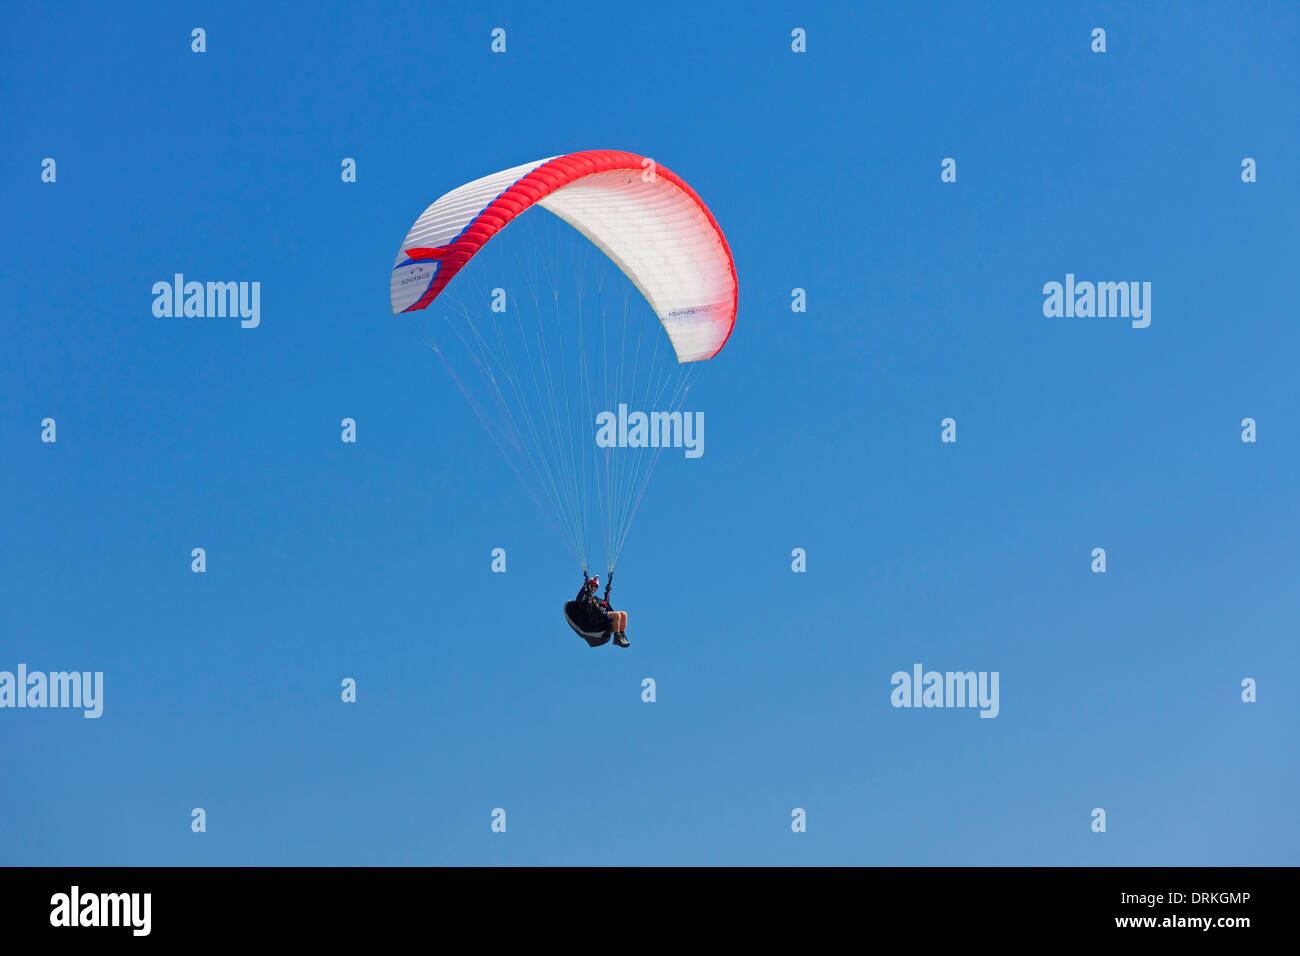 Paraglider in flight with colourful wing / canopy against blue sky Stock Photo